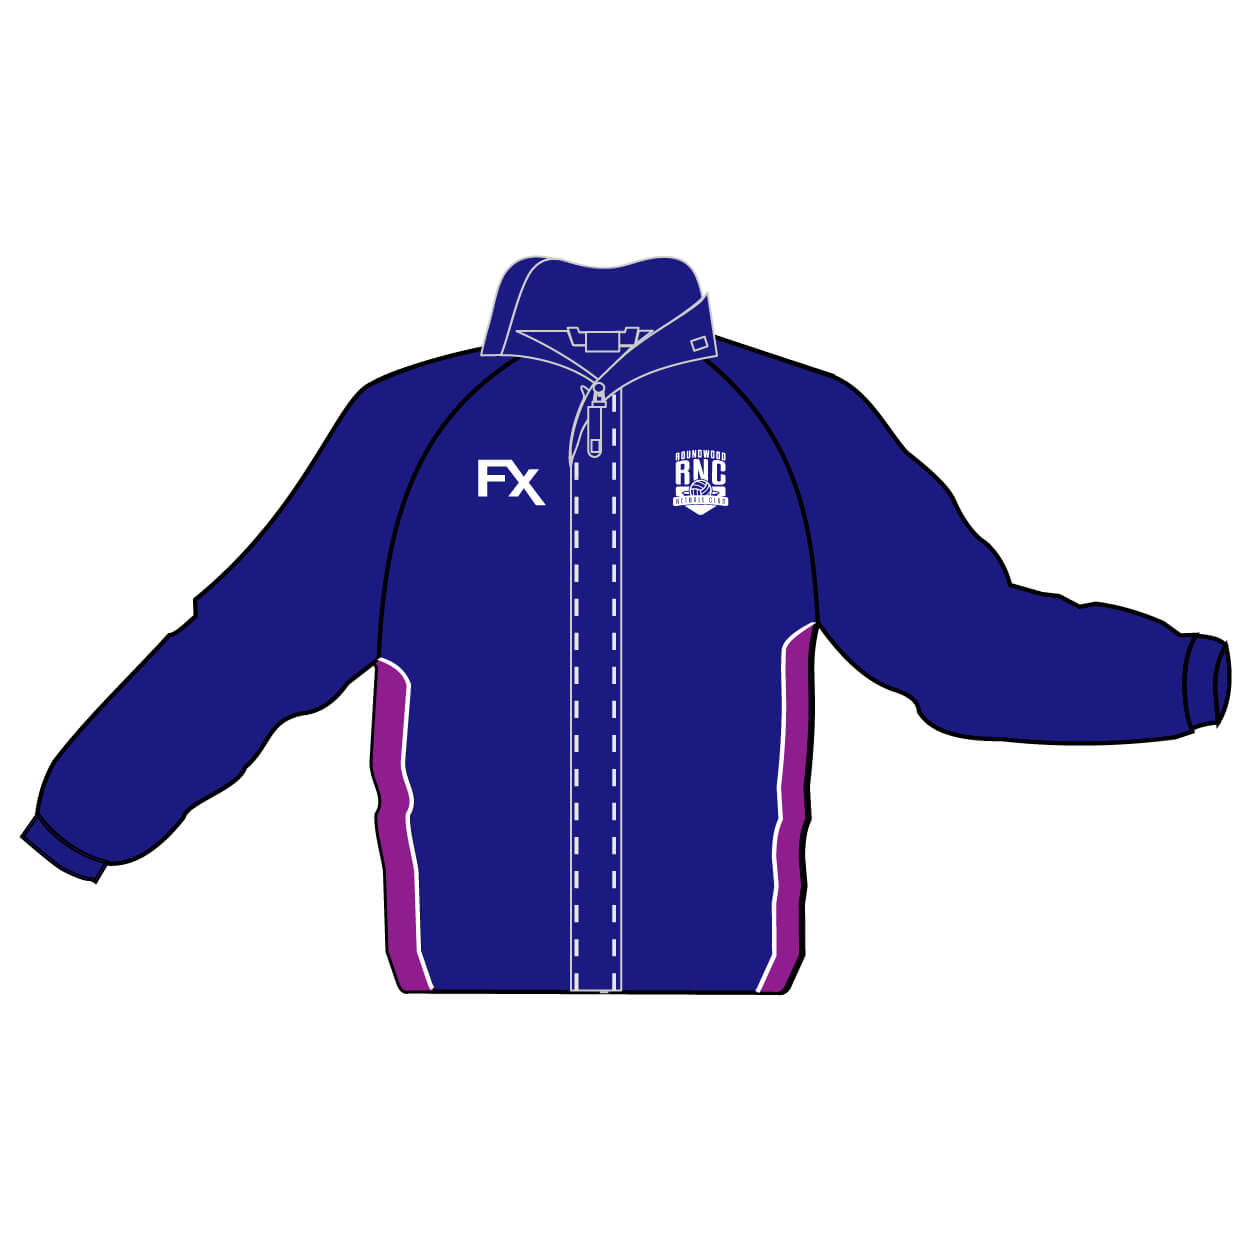 roundwood netball club_Jacket